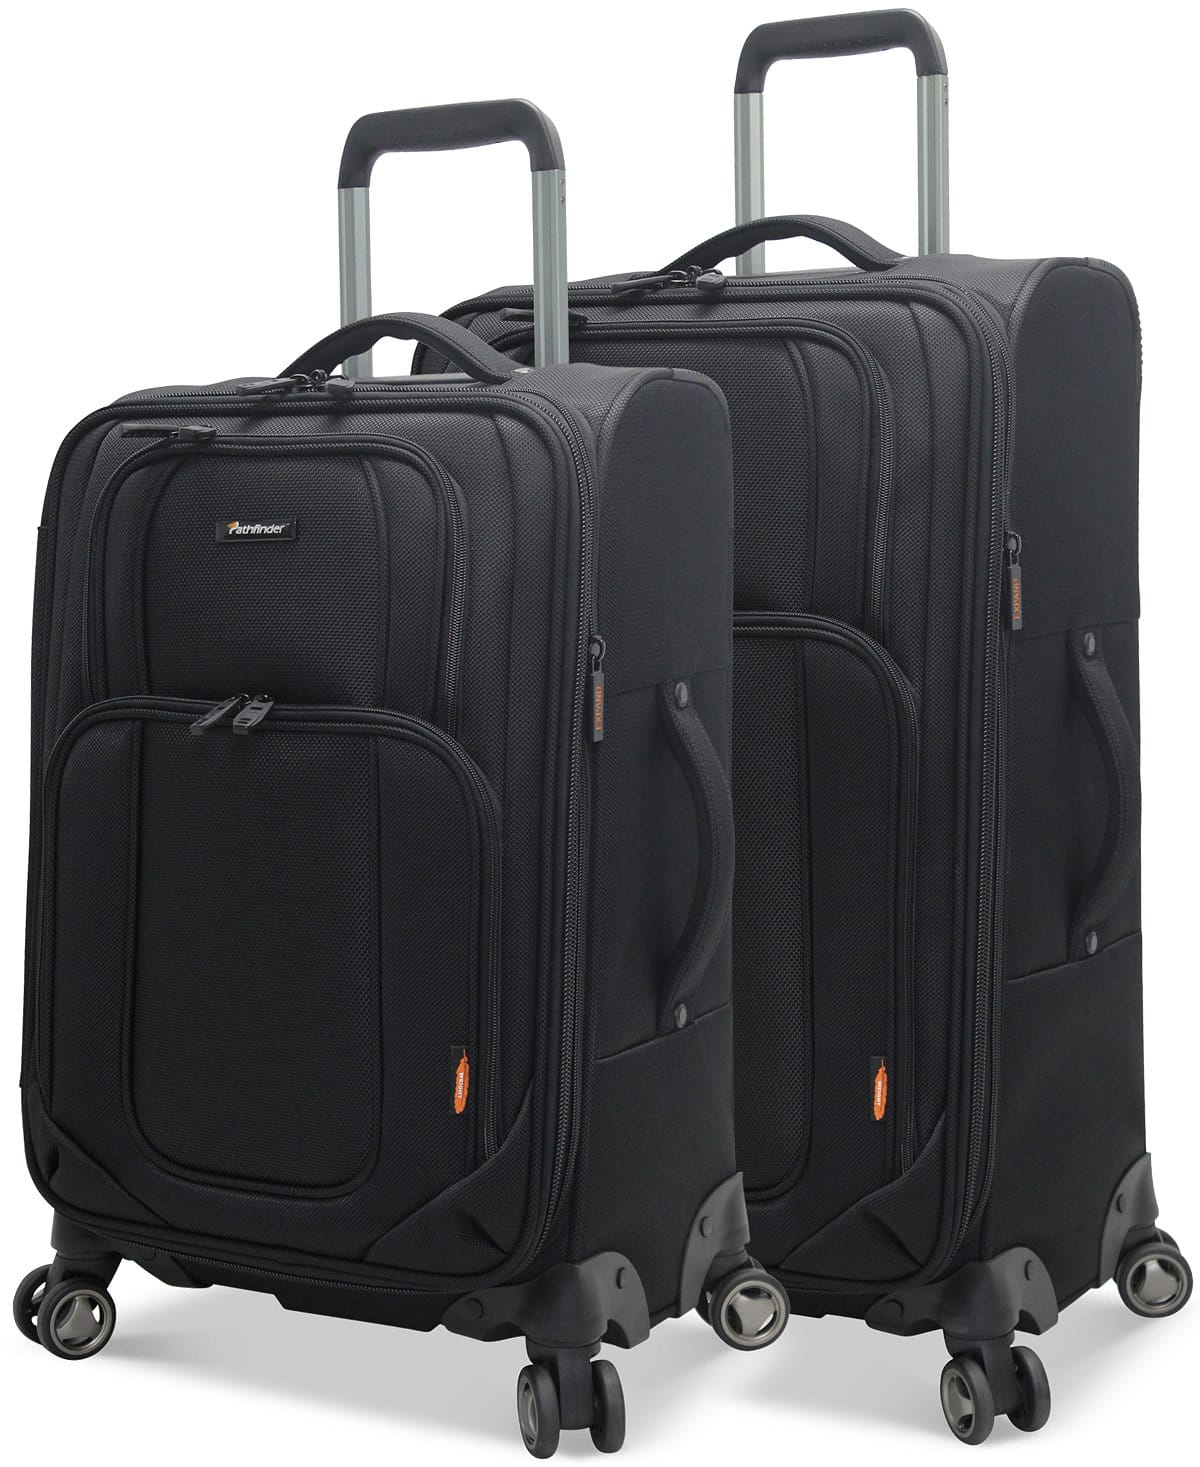 Macy's - One Day Sale on Luggage/Luggage Accessories - $6 and up